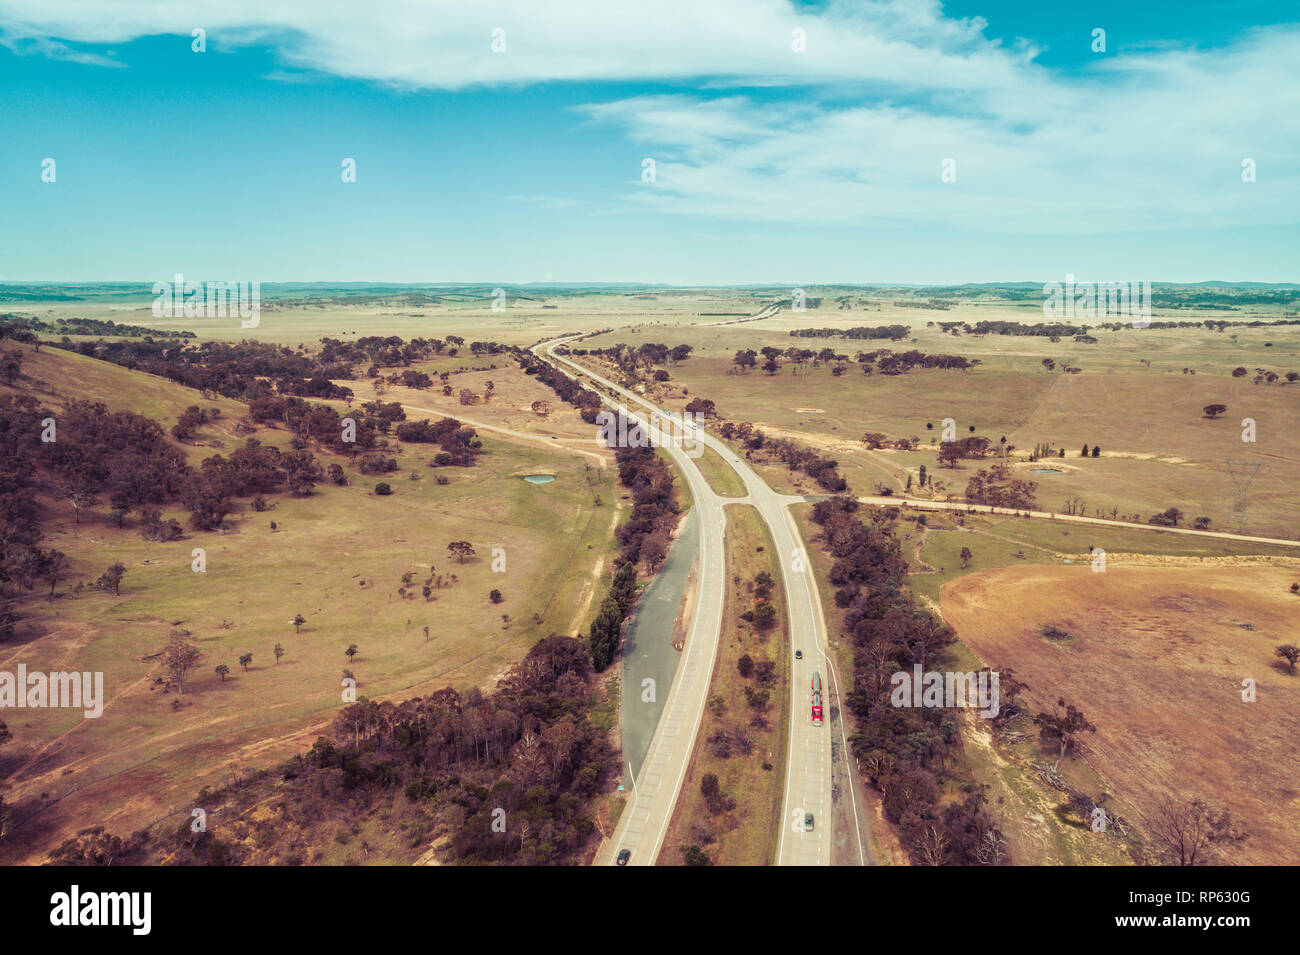 Aerial view of cars and trucks driving on Hume Highway among